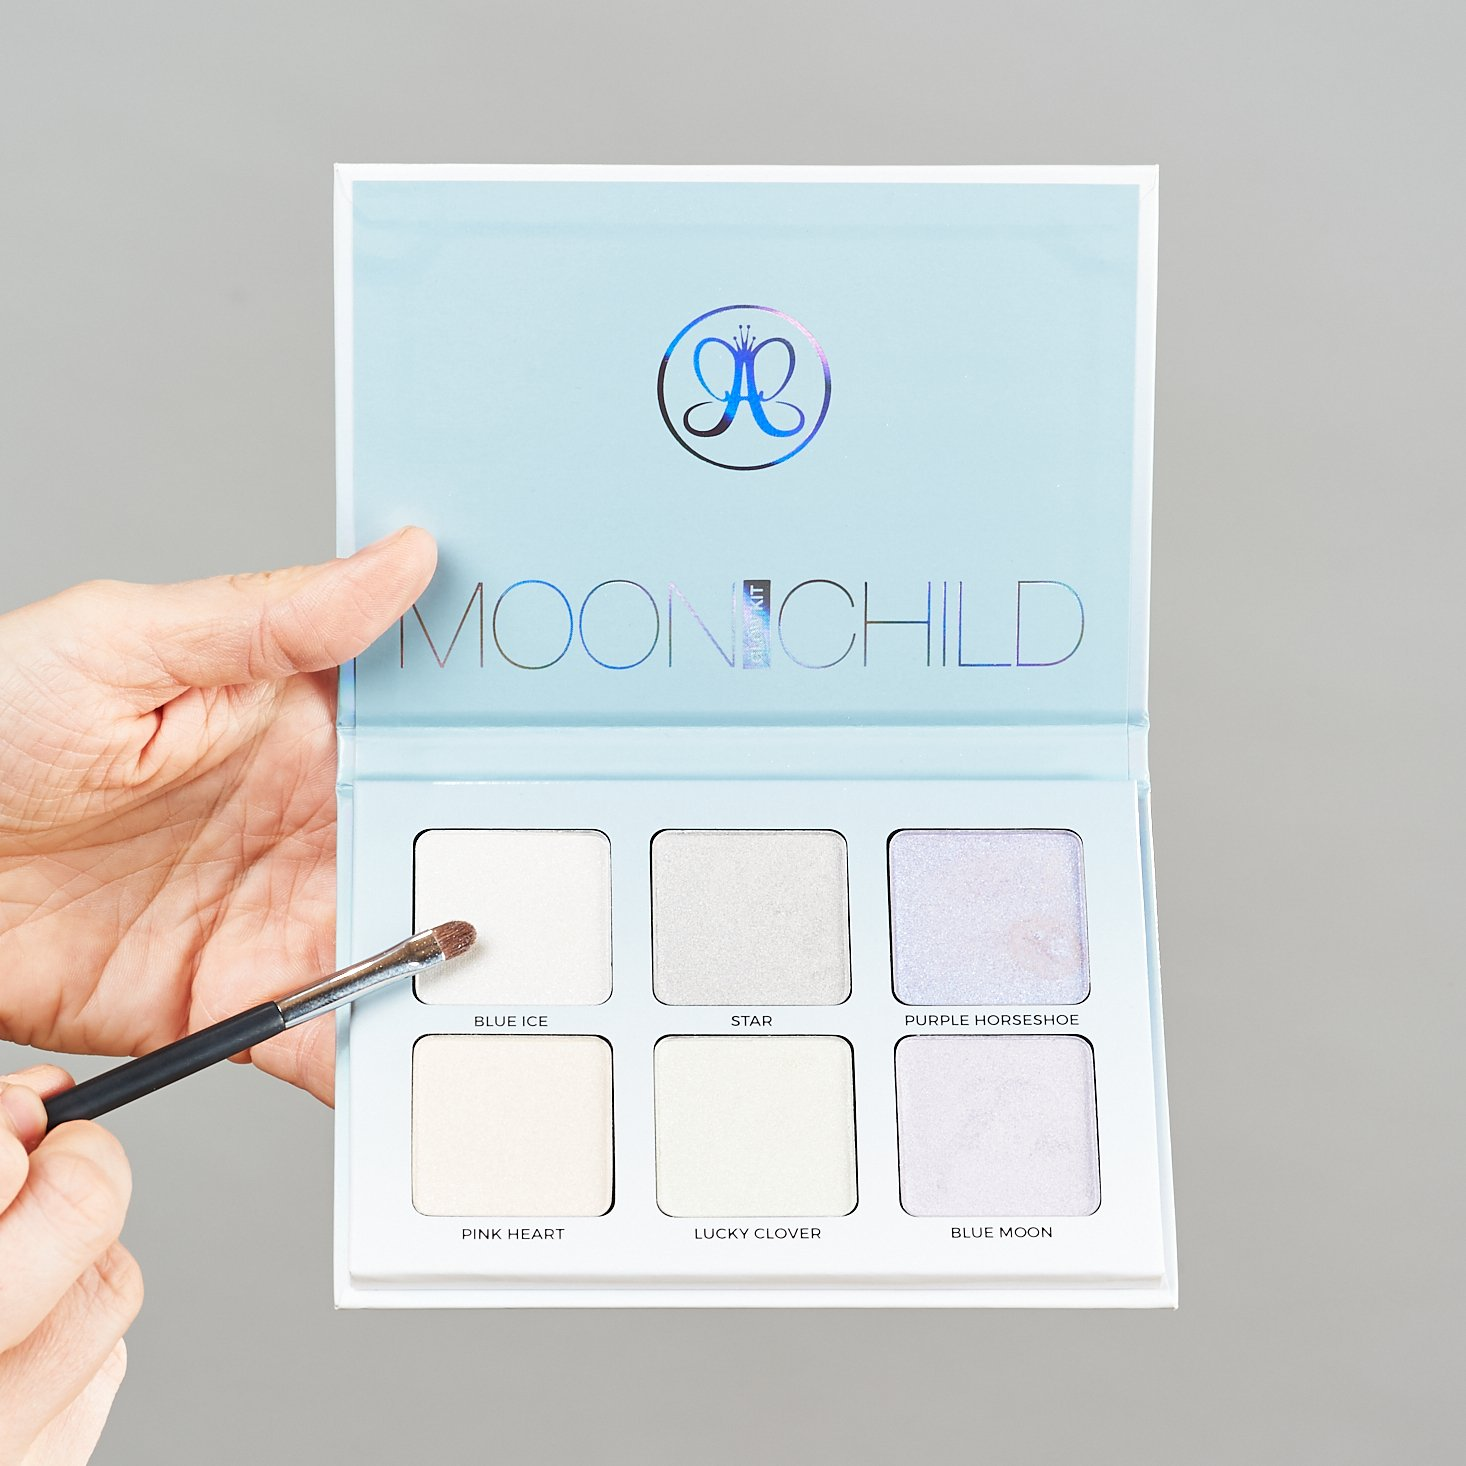 Moonchild Glow Kit from Anatasia Beverly Hills with brush pointing to Blue Ice